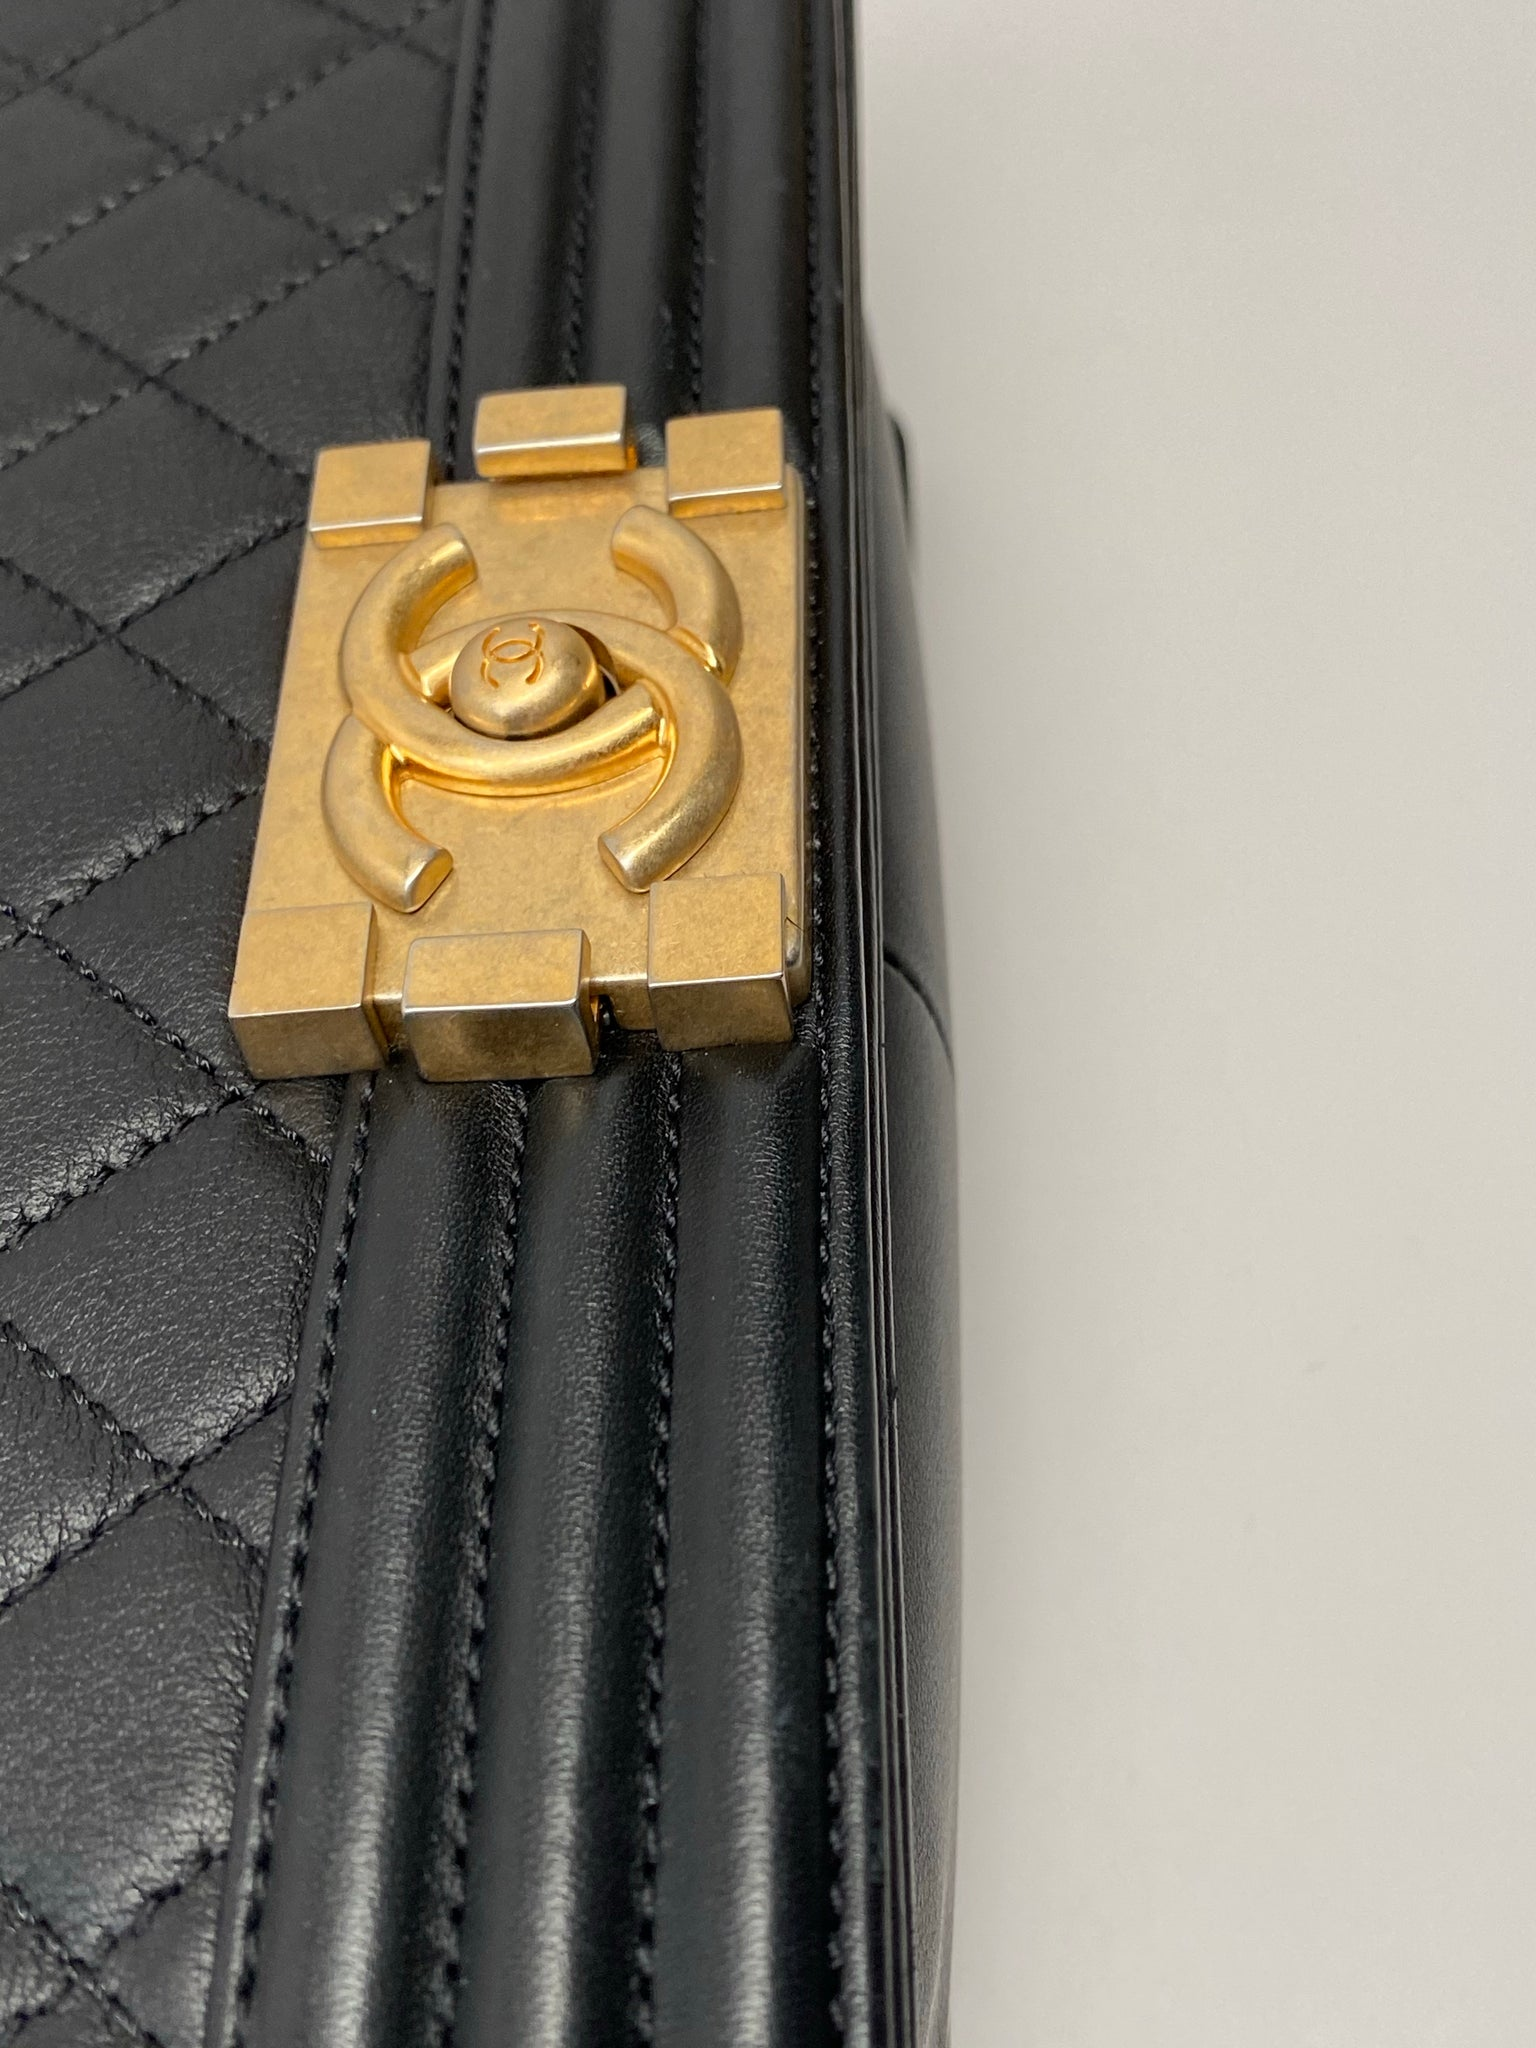 CHANEL MEDIUM BOY FLAP BAG - BLACK CALFSKIN